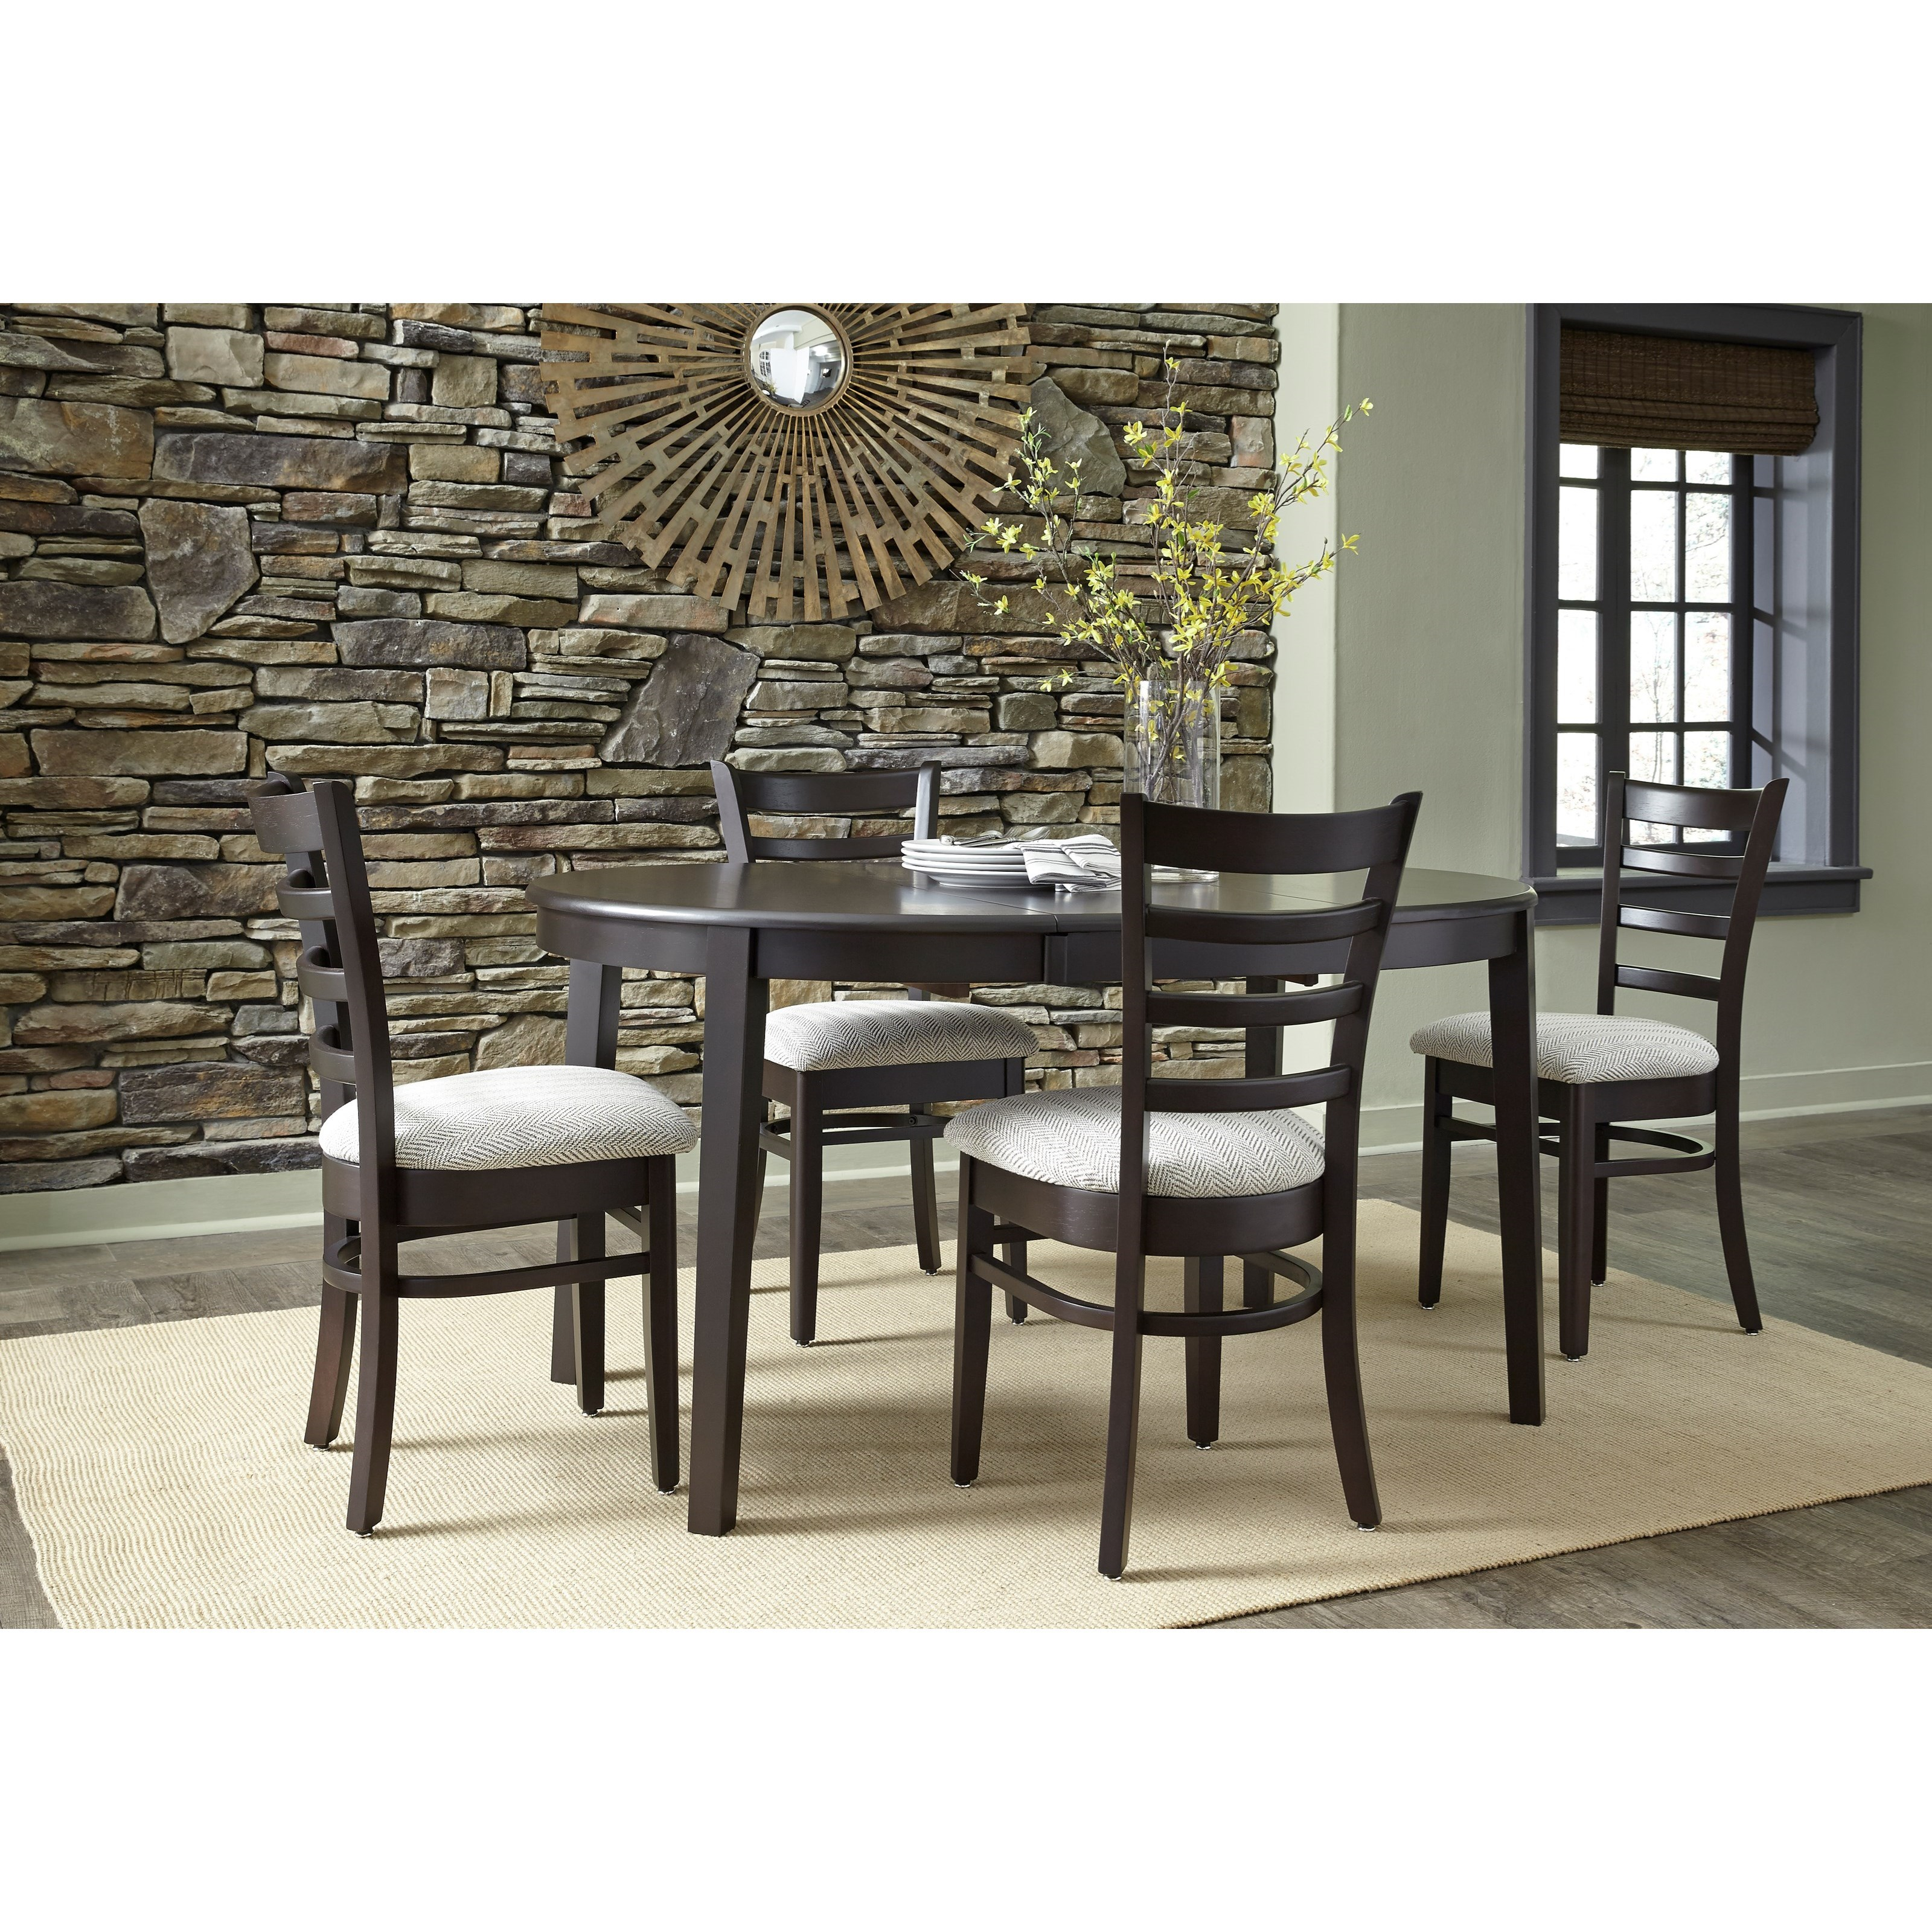 SELECT Dining 5-Piece Table and Chair Set by John Thomas at Baer's Furniture